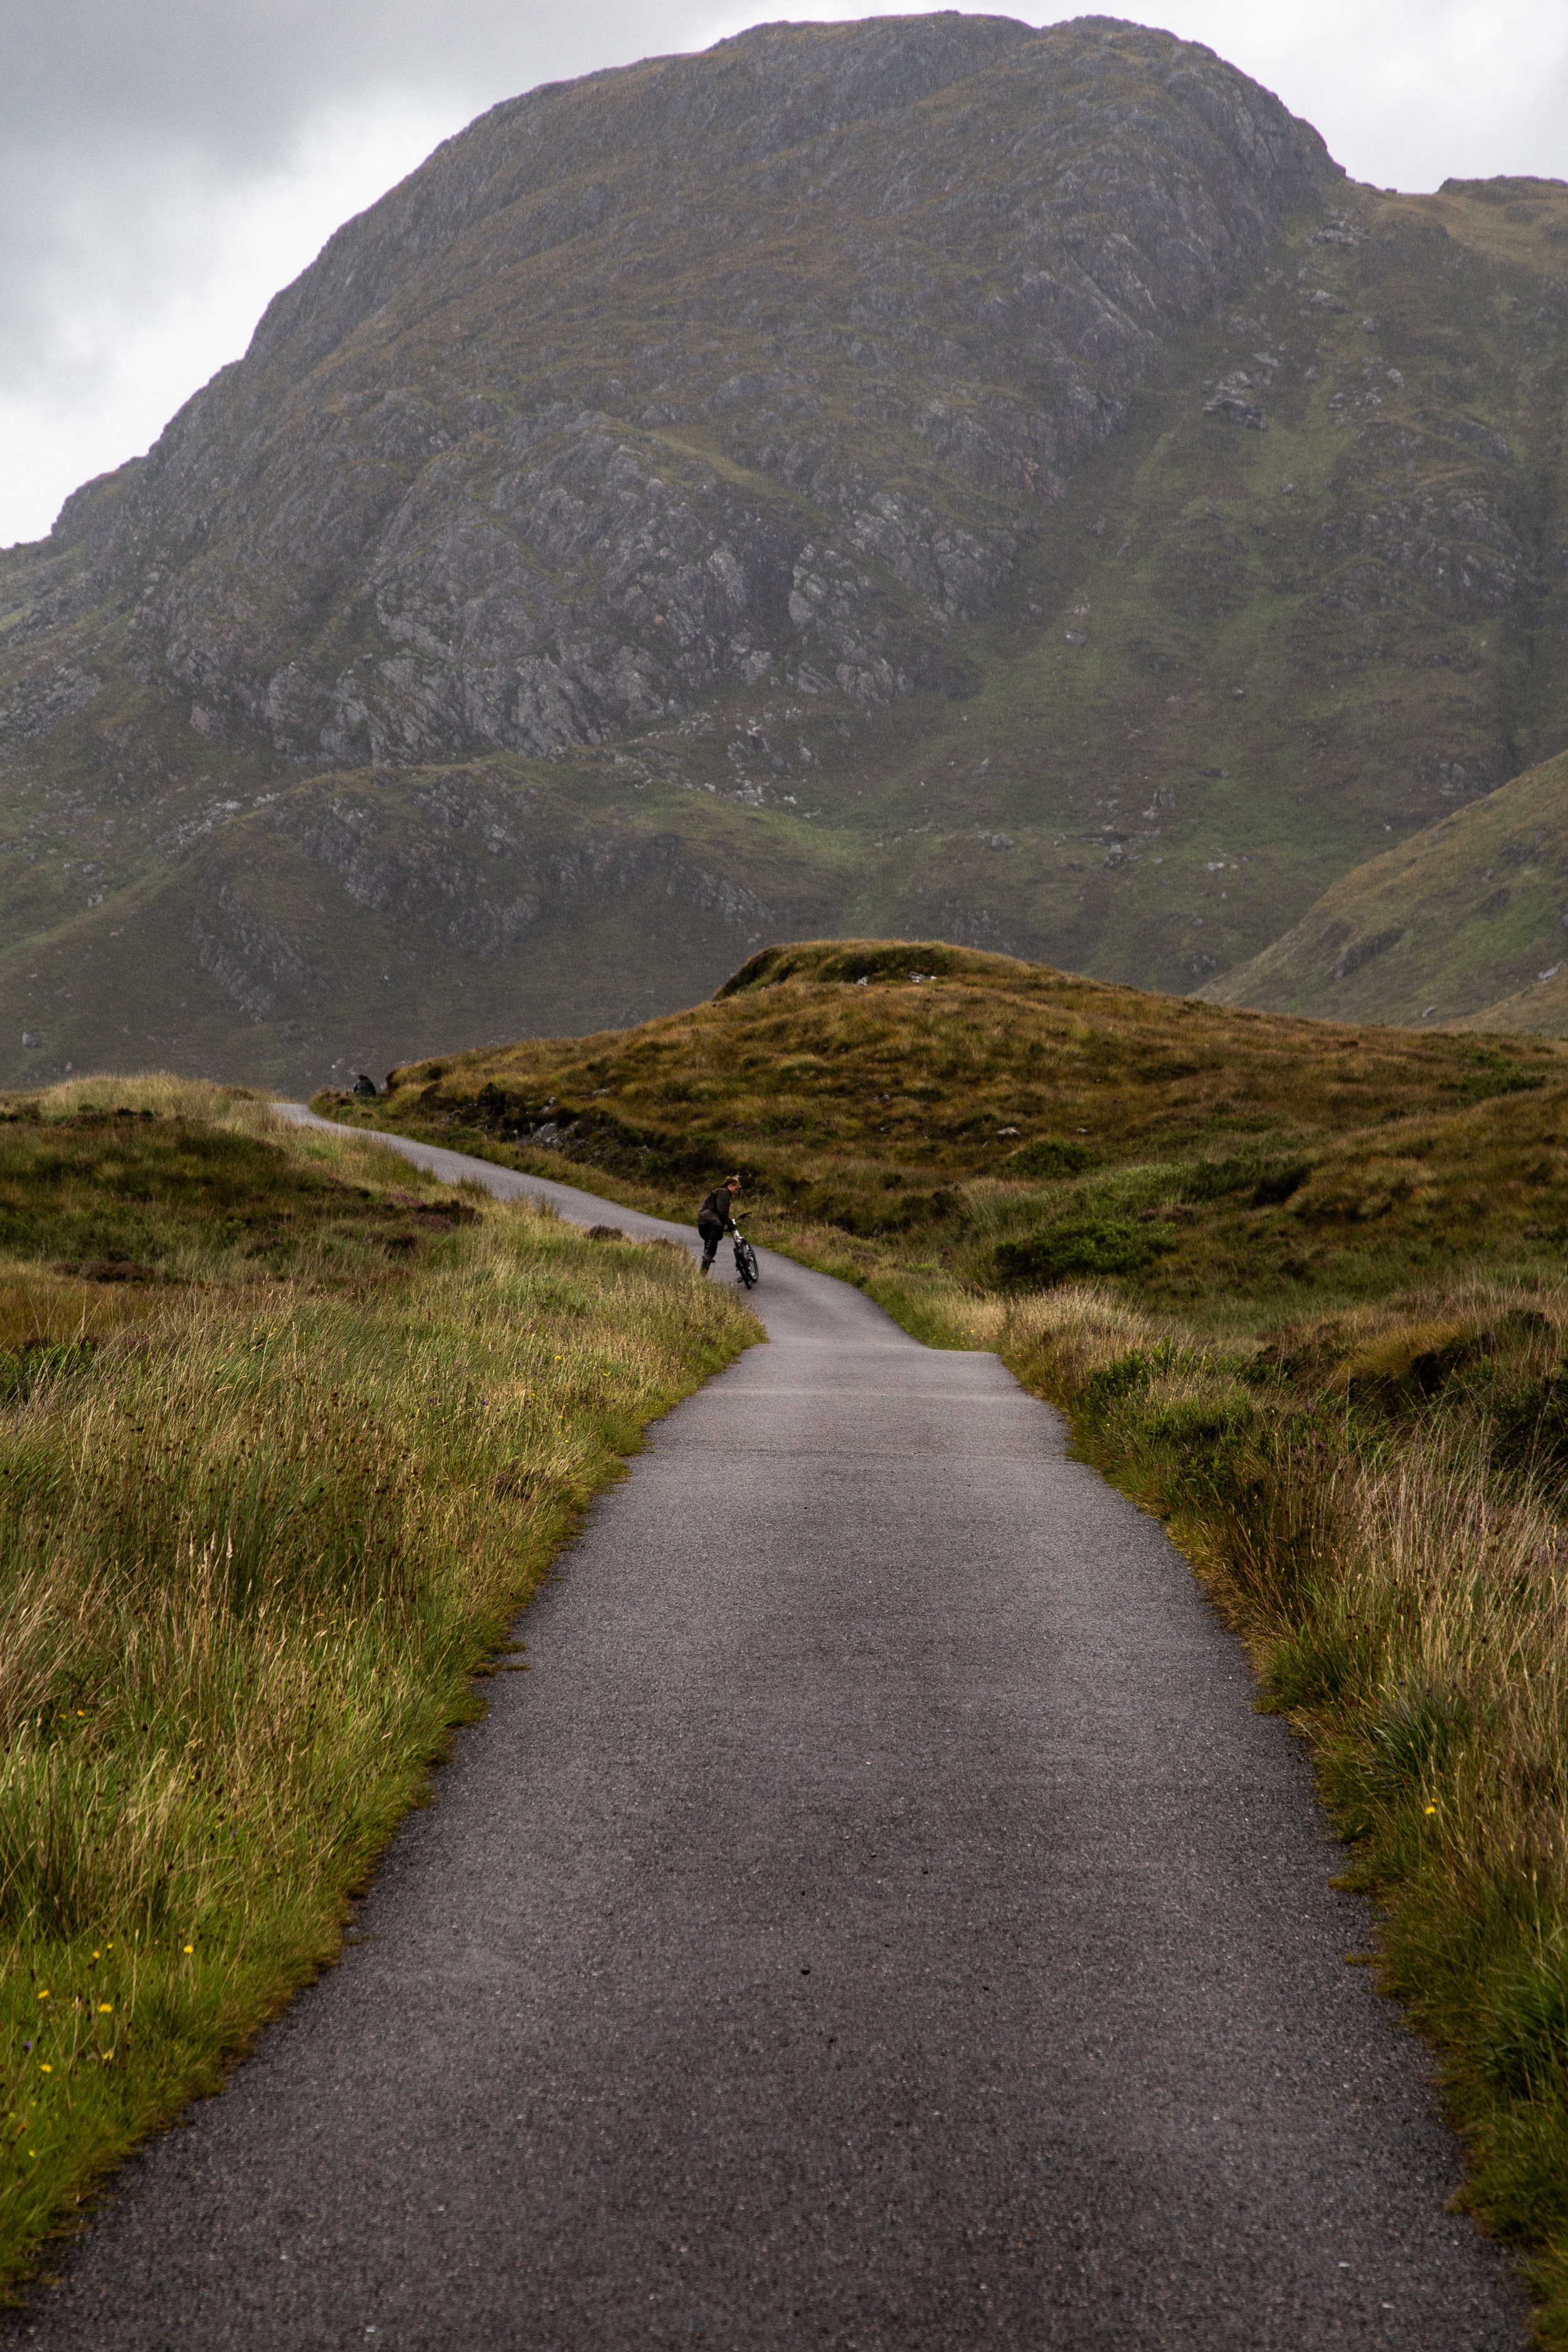 Cycling the road to Airor, a tiny hamlet on the northern coast of Knoydart